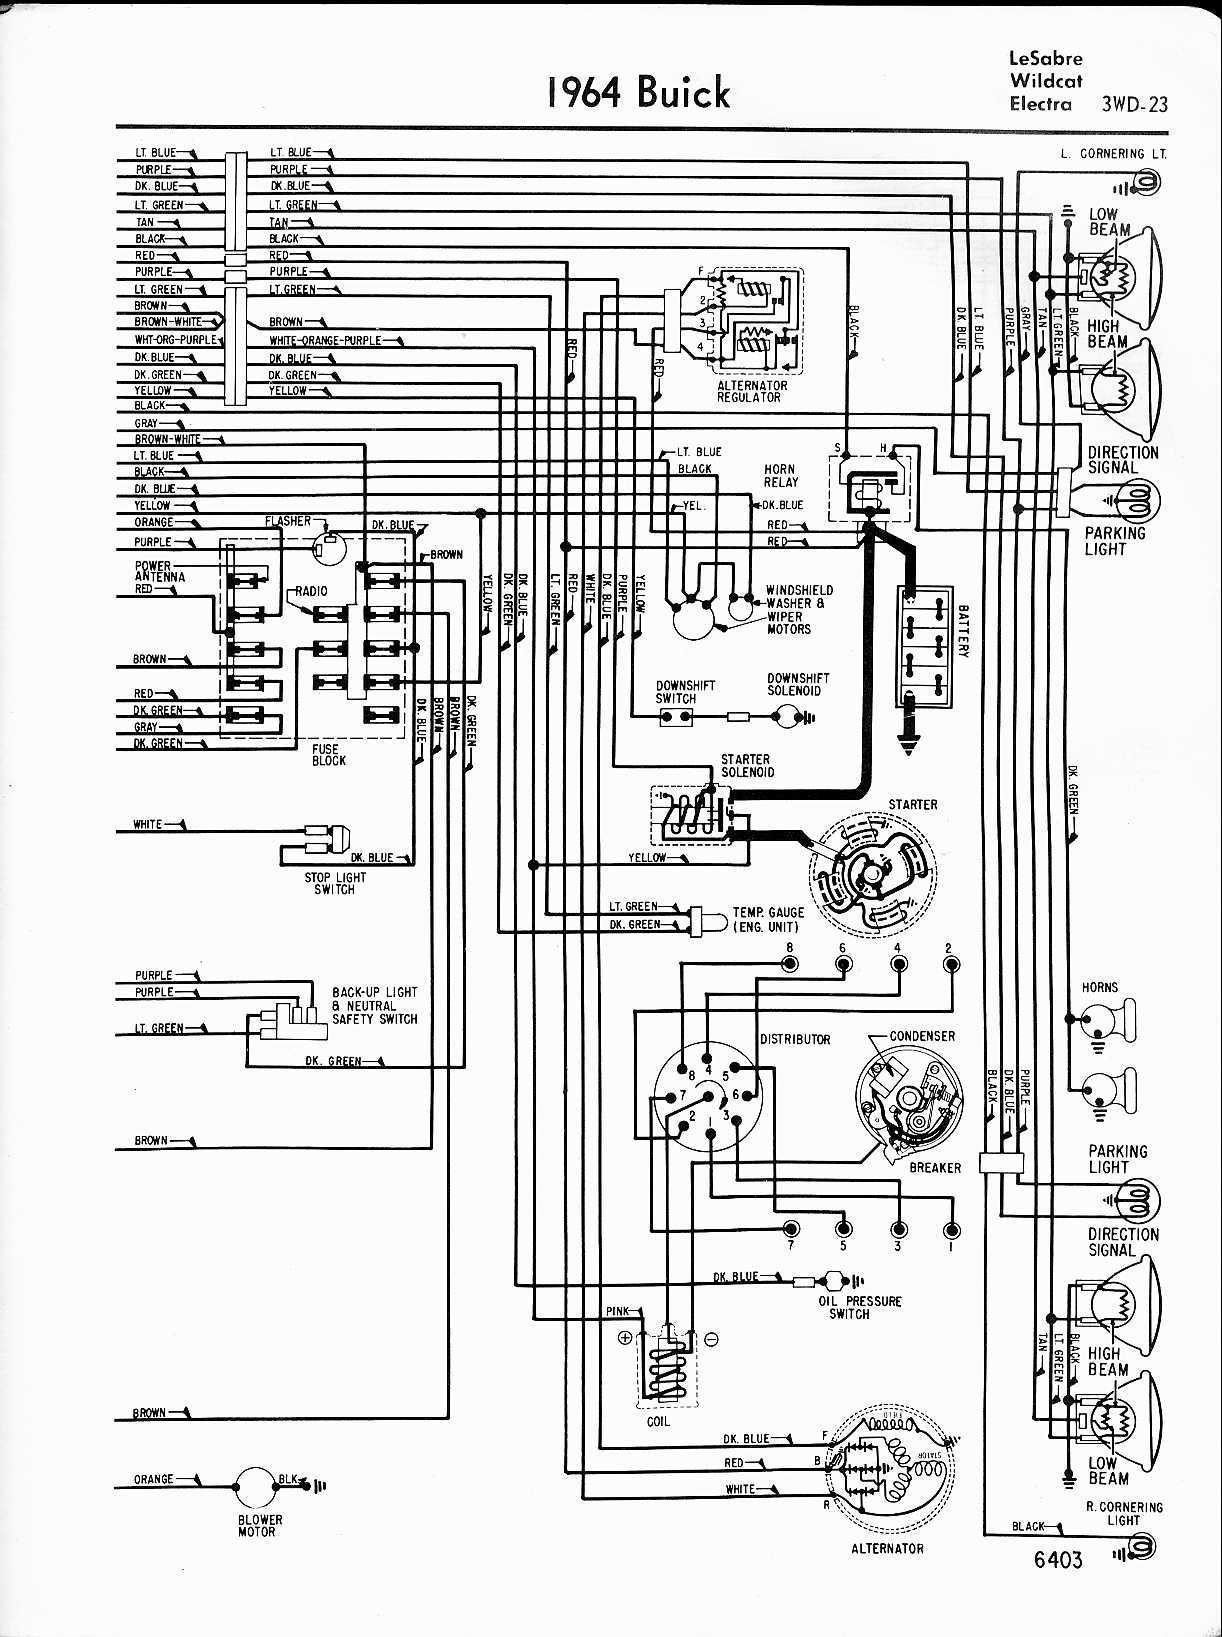 Lucerne Wiring Diagram Diagrams Lighting Circuit On Basic Electrical 2007 Buick Engine Library Rh 26 Codingcommunity De 2008